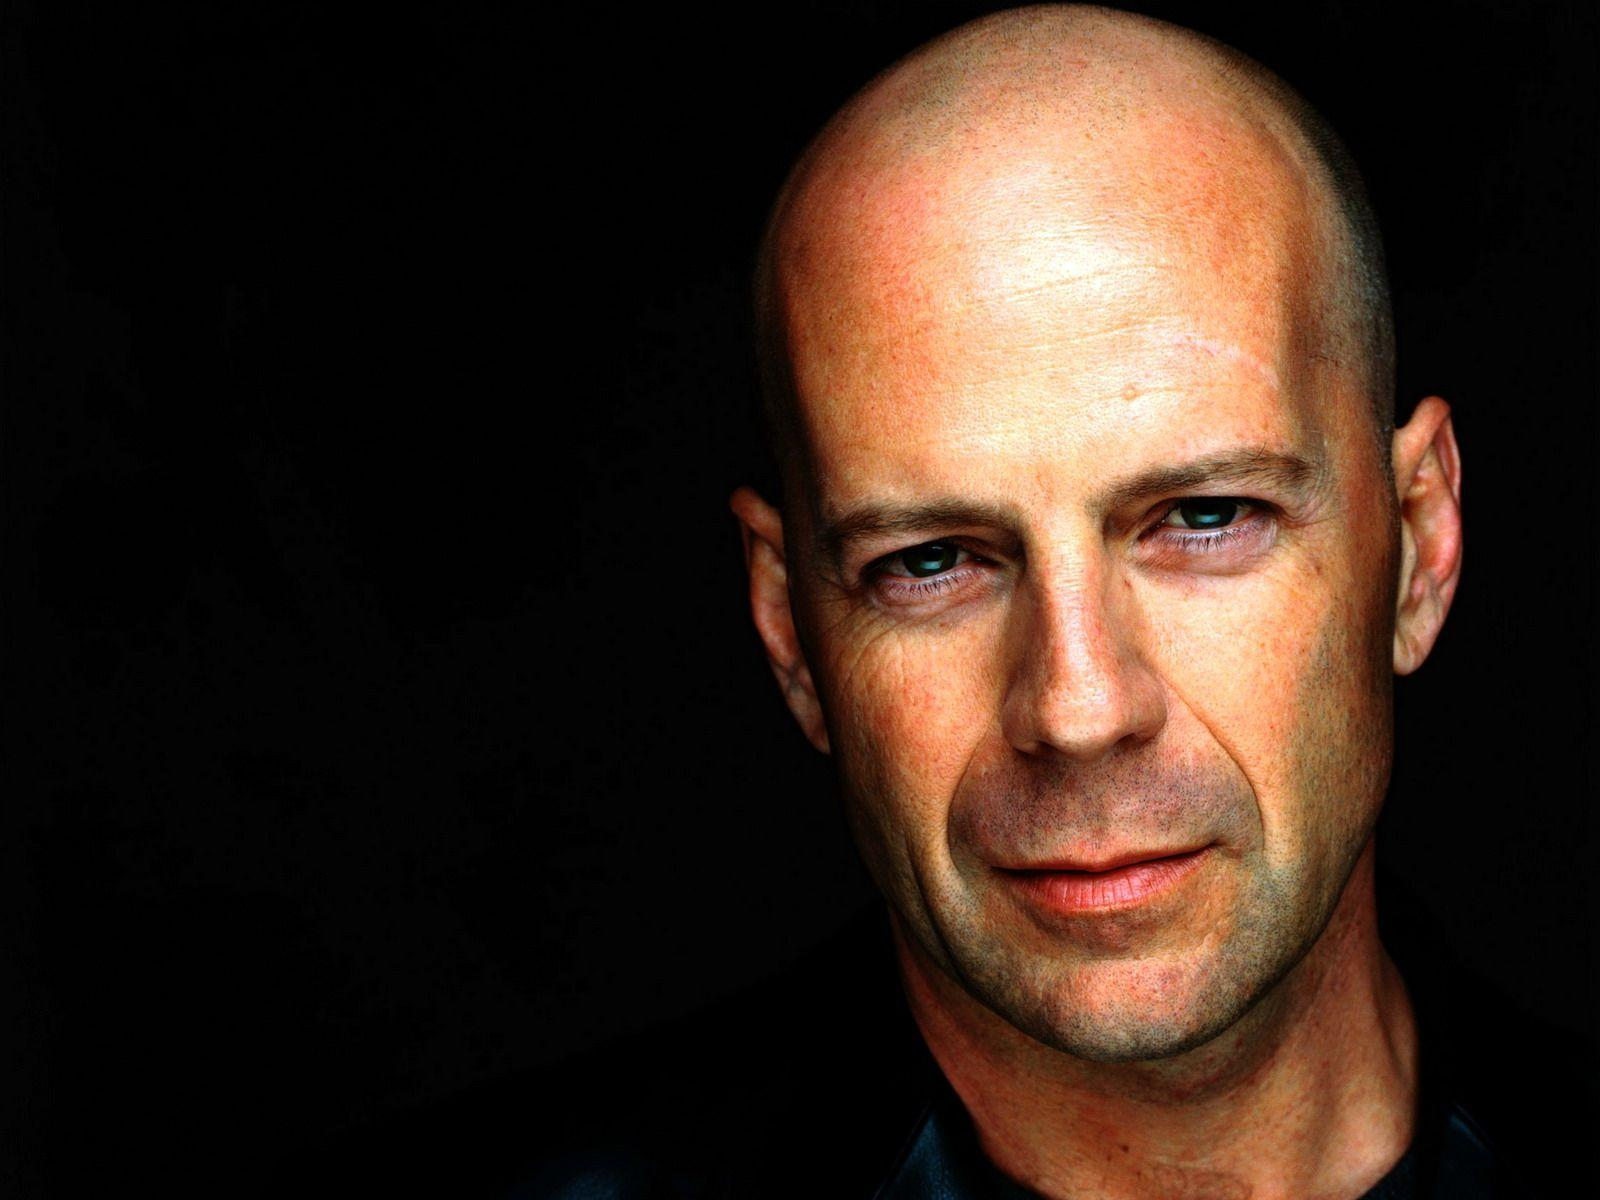 More Beautiful Bruce Willis Wallpaper | FLgrx Graphics